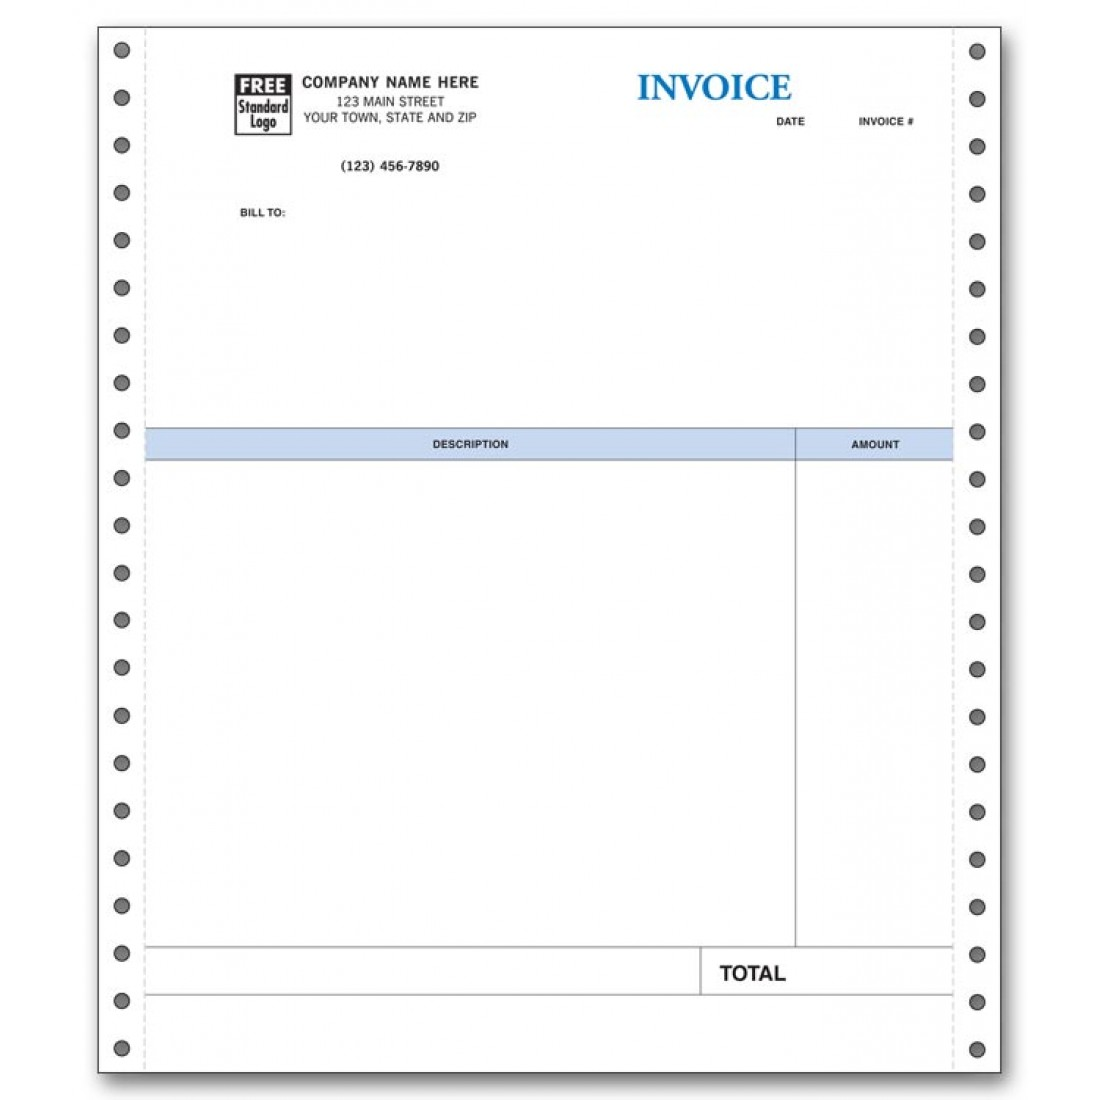 Continuous Professional Invoice compatible with QuickBooks